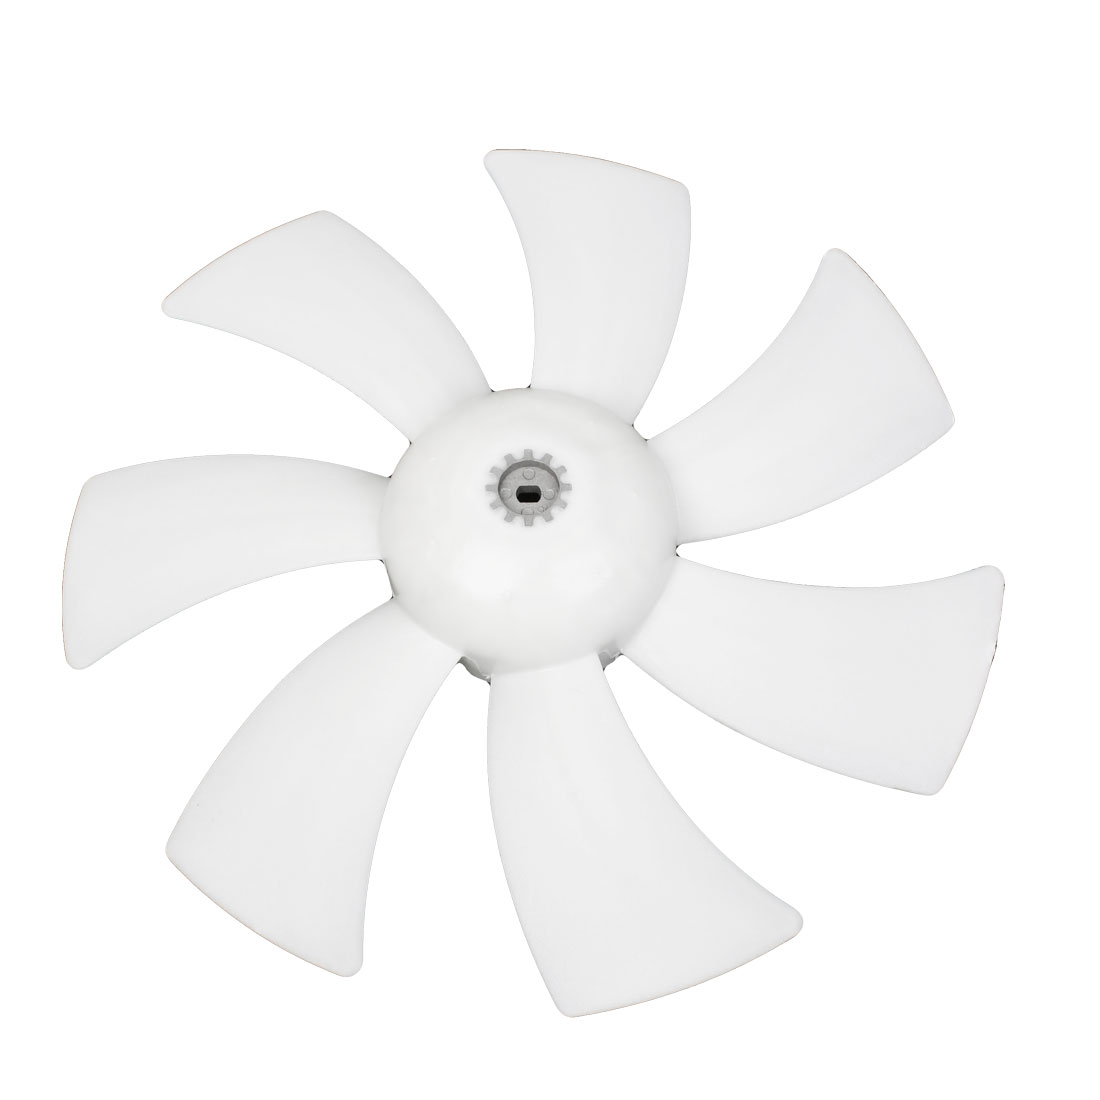 White Plastic 7 Impeller Motor Fan Blade 16361-74160